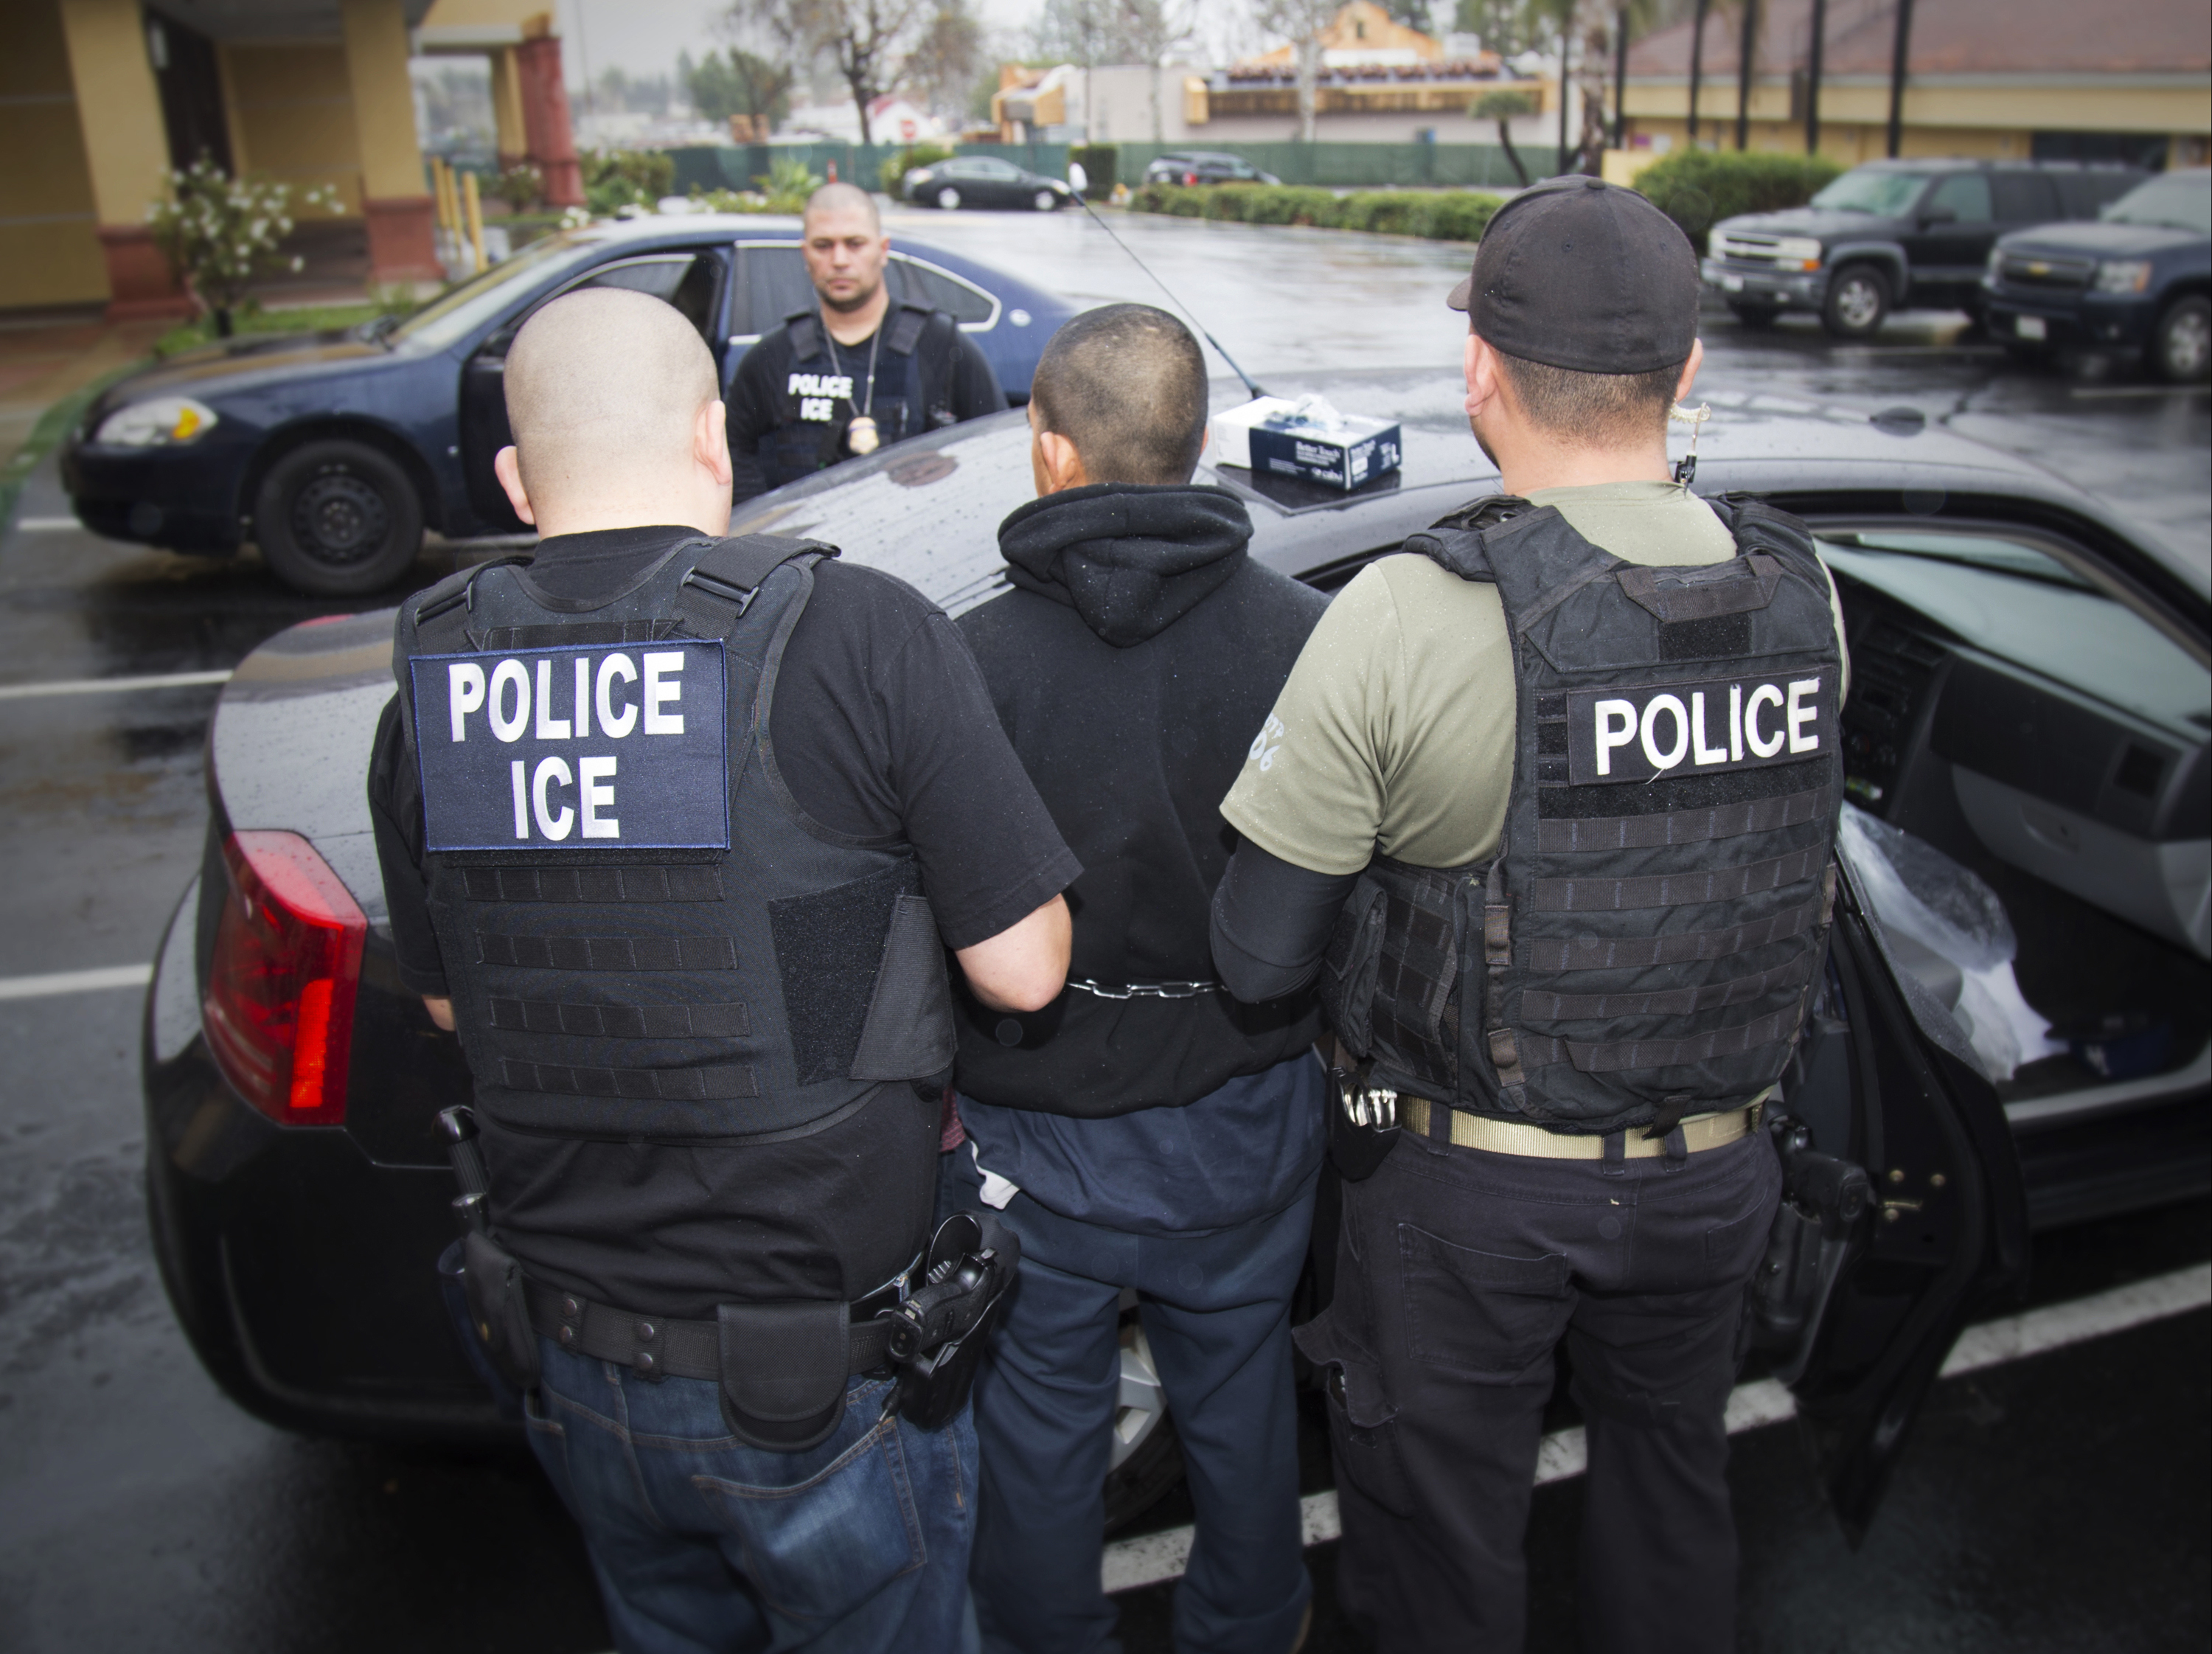 The country's top immigration enforcement officer says he is looking into charging sanctuary city leaders with violating federal anti-smuggling laws because he is fed up with local officials putting their communities and his officers at risk by releasing illegal immigrants from jail.